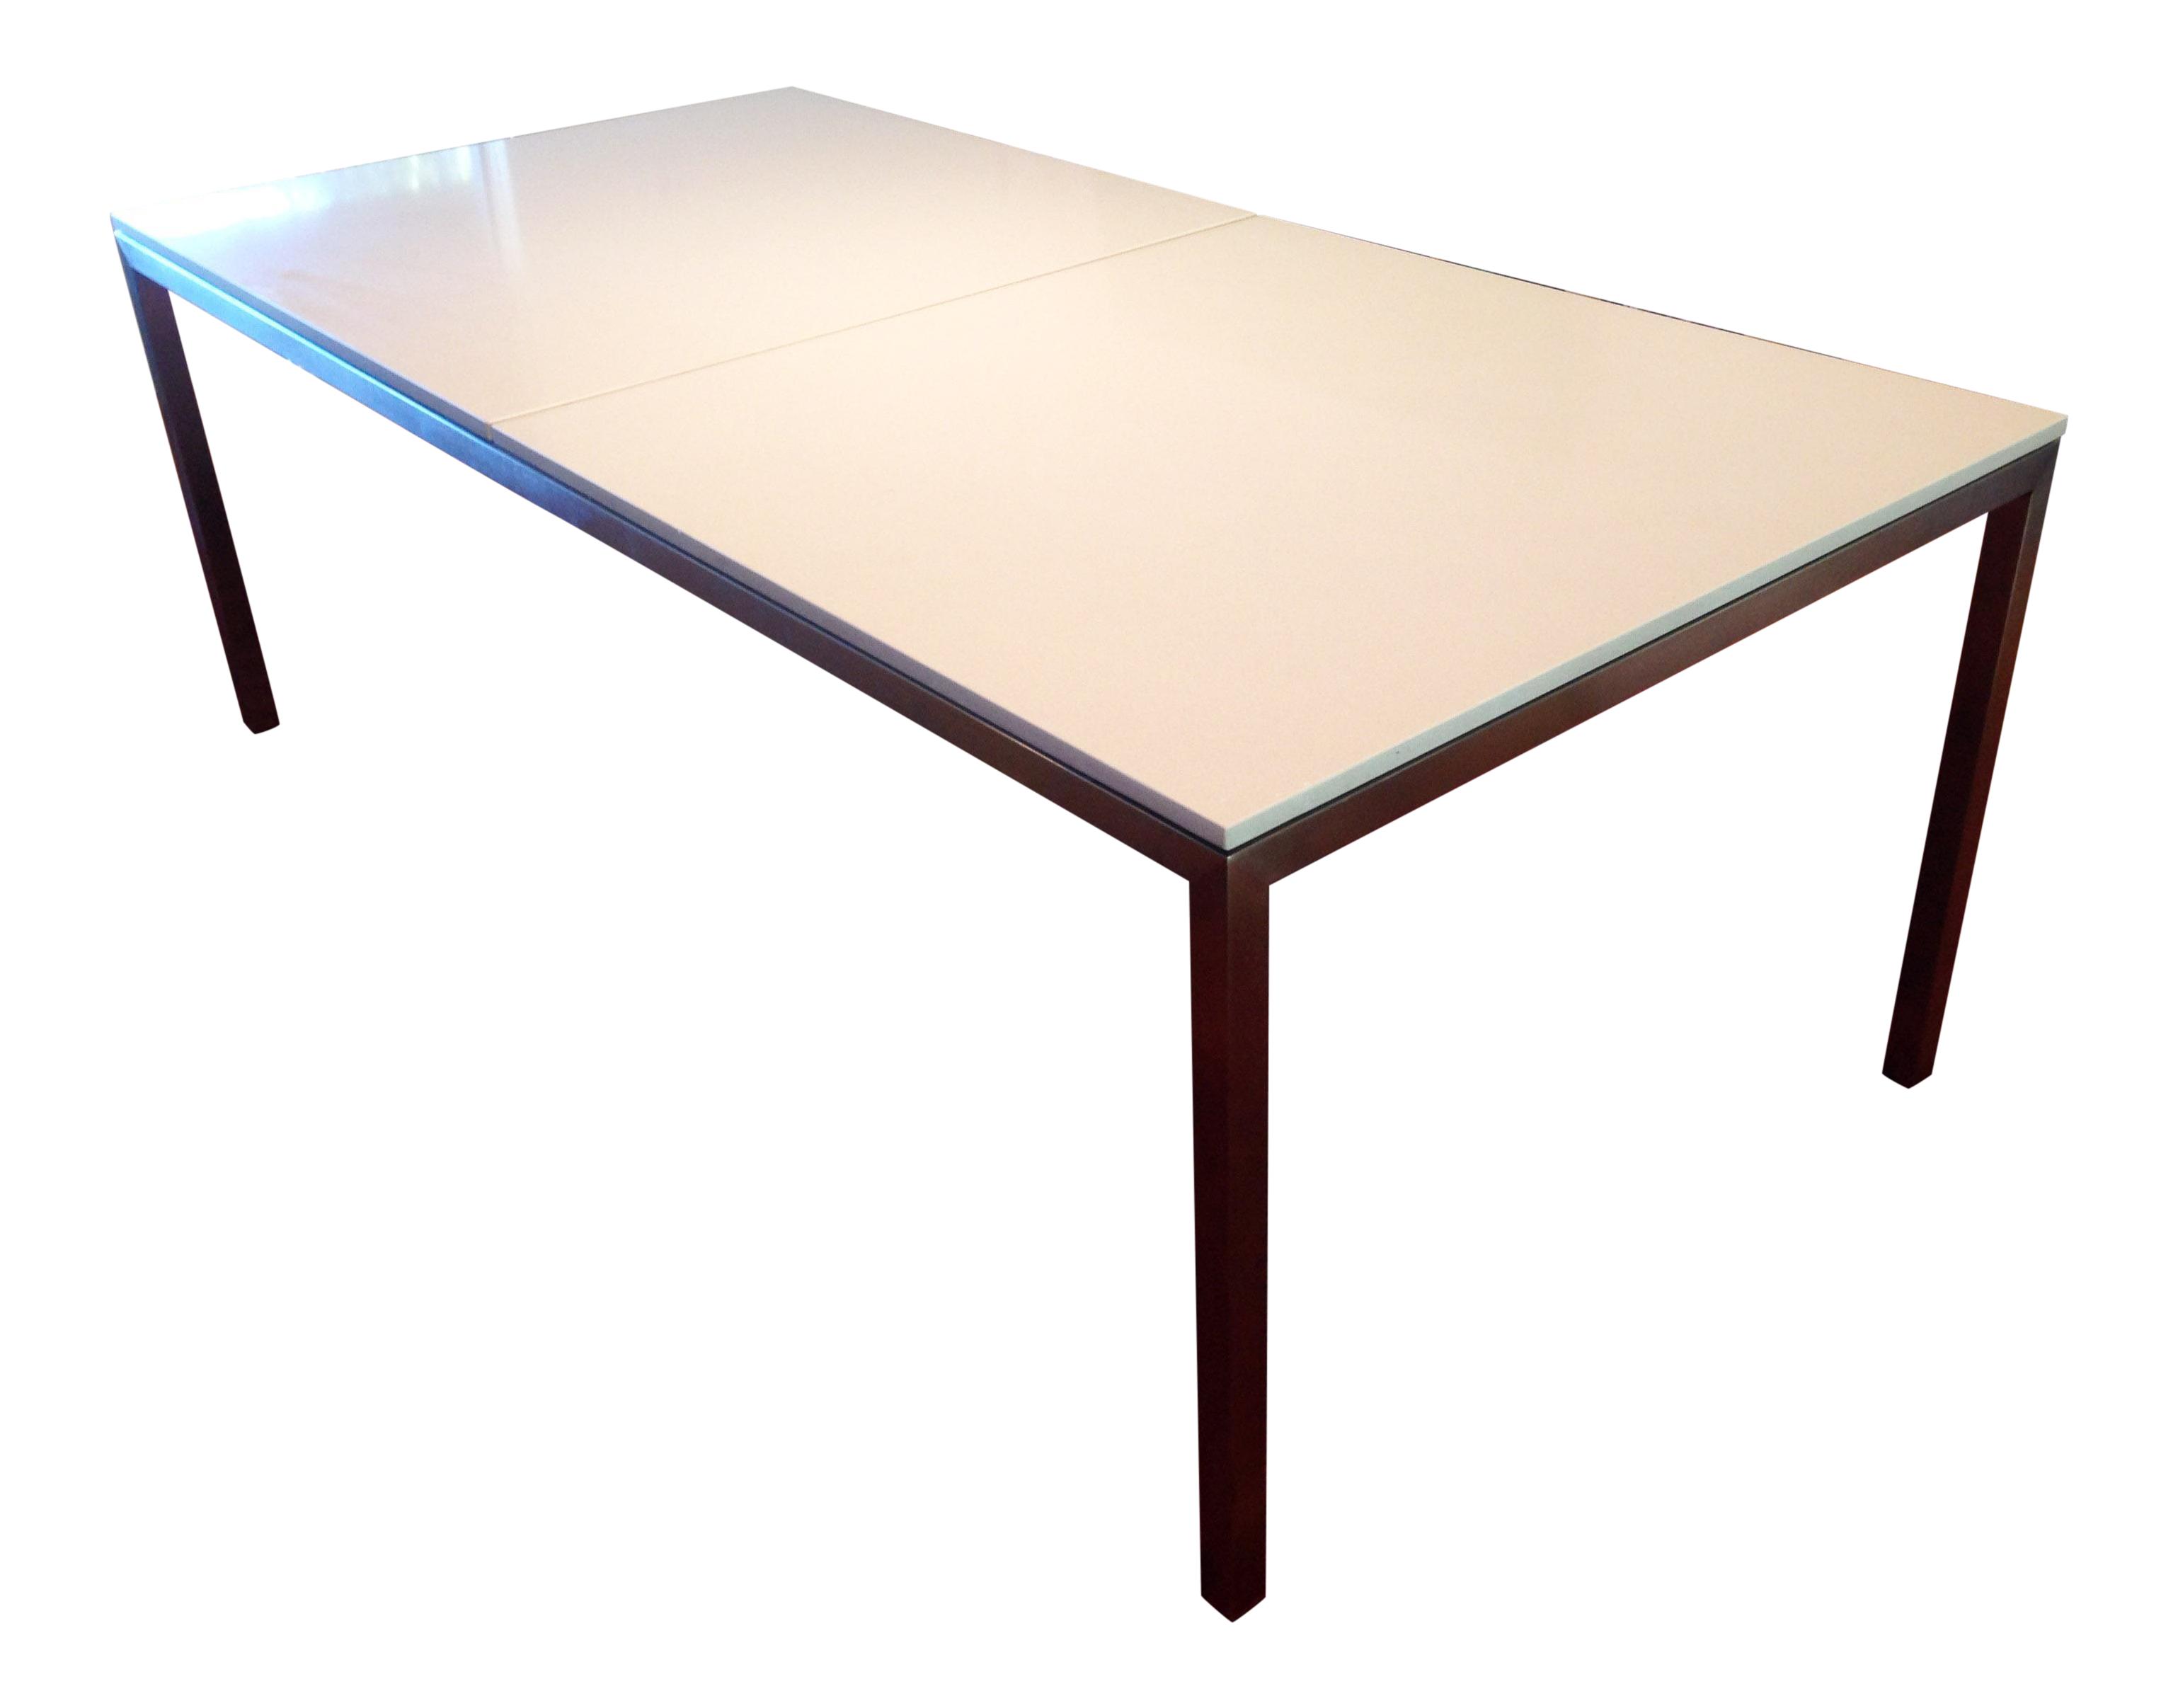 Room & Board Portica Table Stainless Steel & Quartz